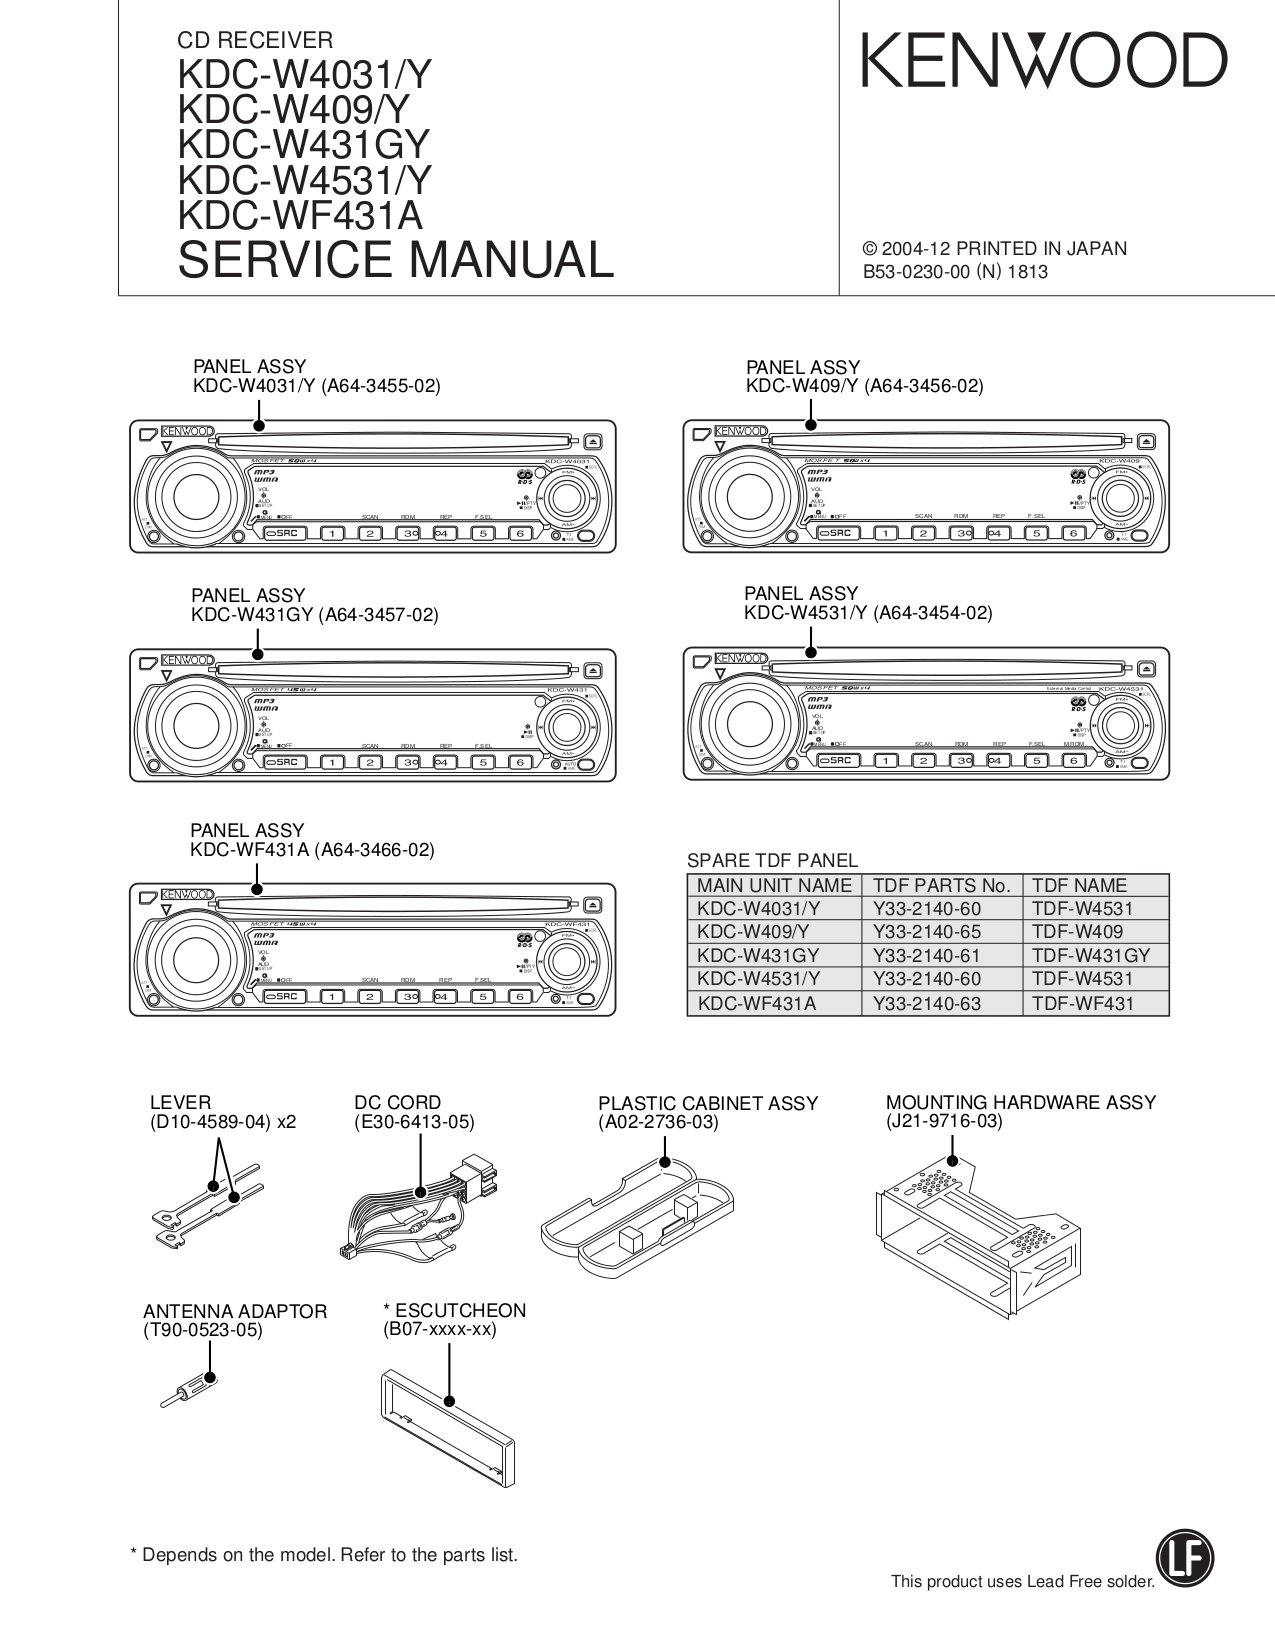 Kenwood Kdc 322 Wiring Diagram Books Of Car Radio Download Free Pdf For Receiver Manual Rh Umlib Com